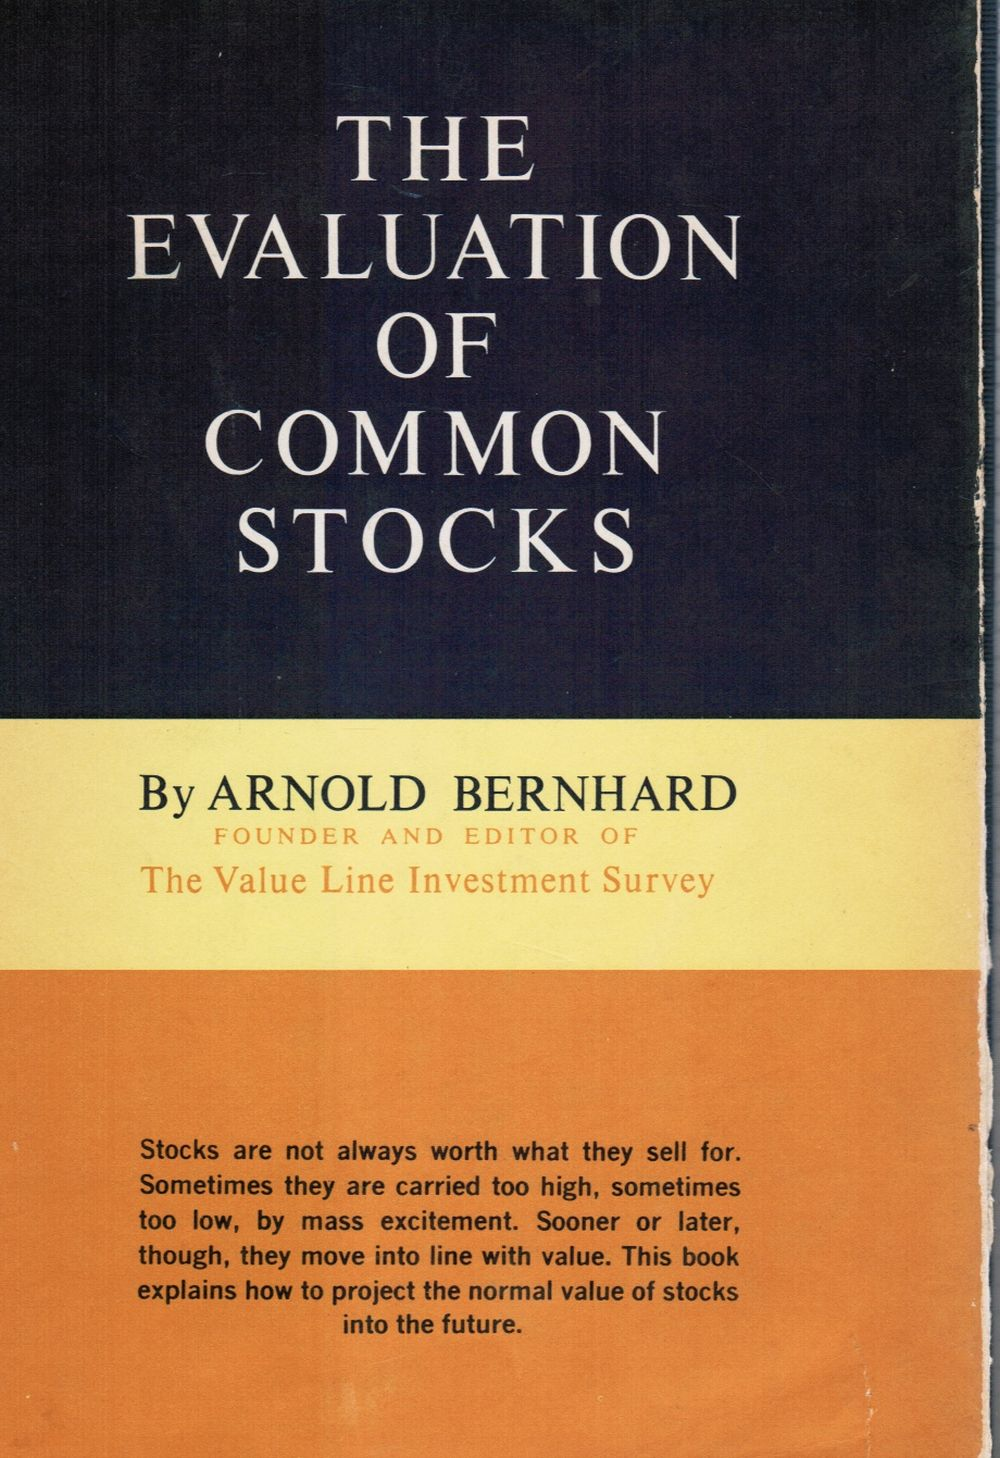 Image for The Evaluation of Common Stocks